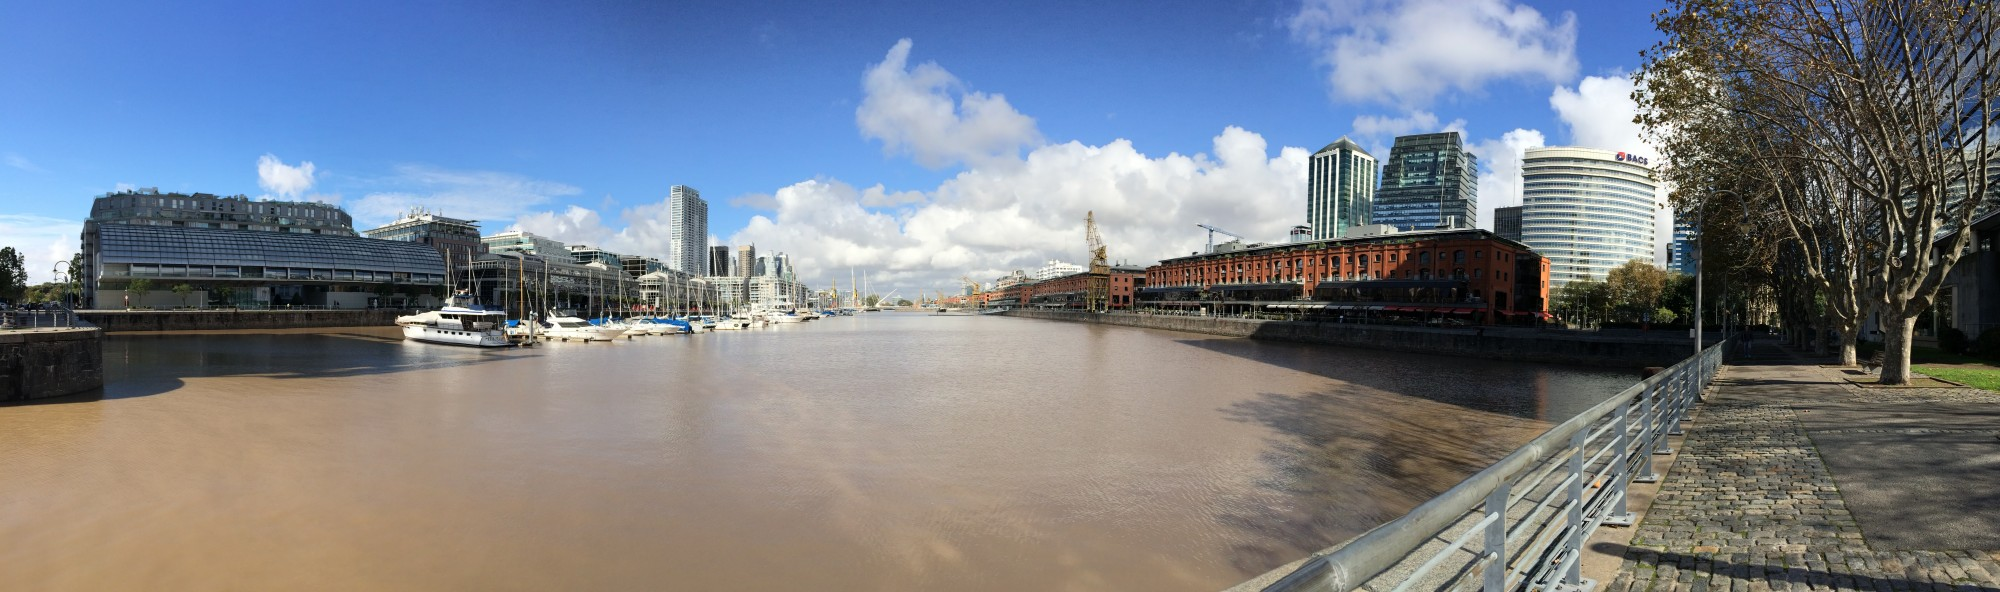 puerto-madero-panoramica-buenos-aires